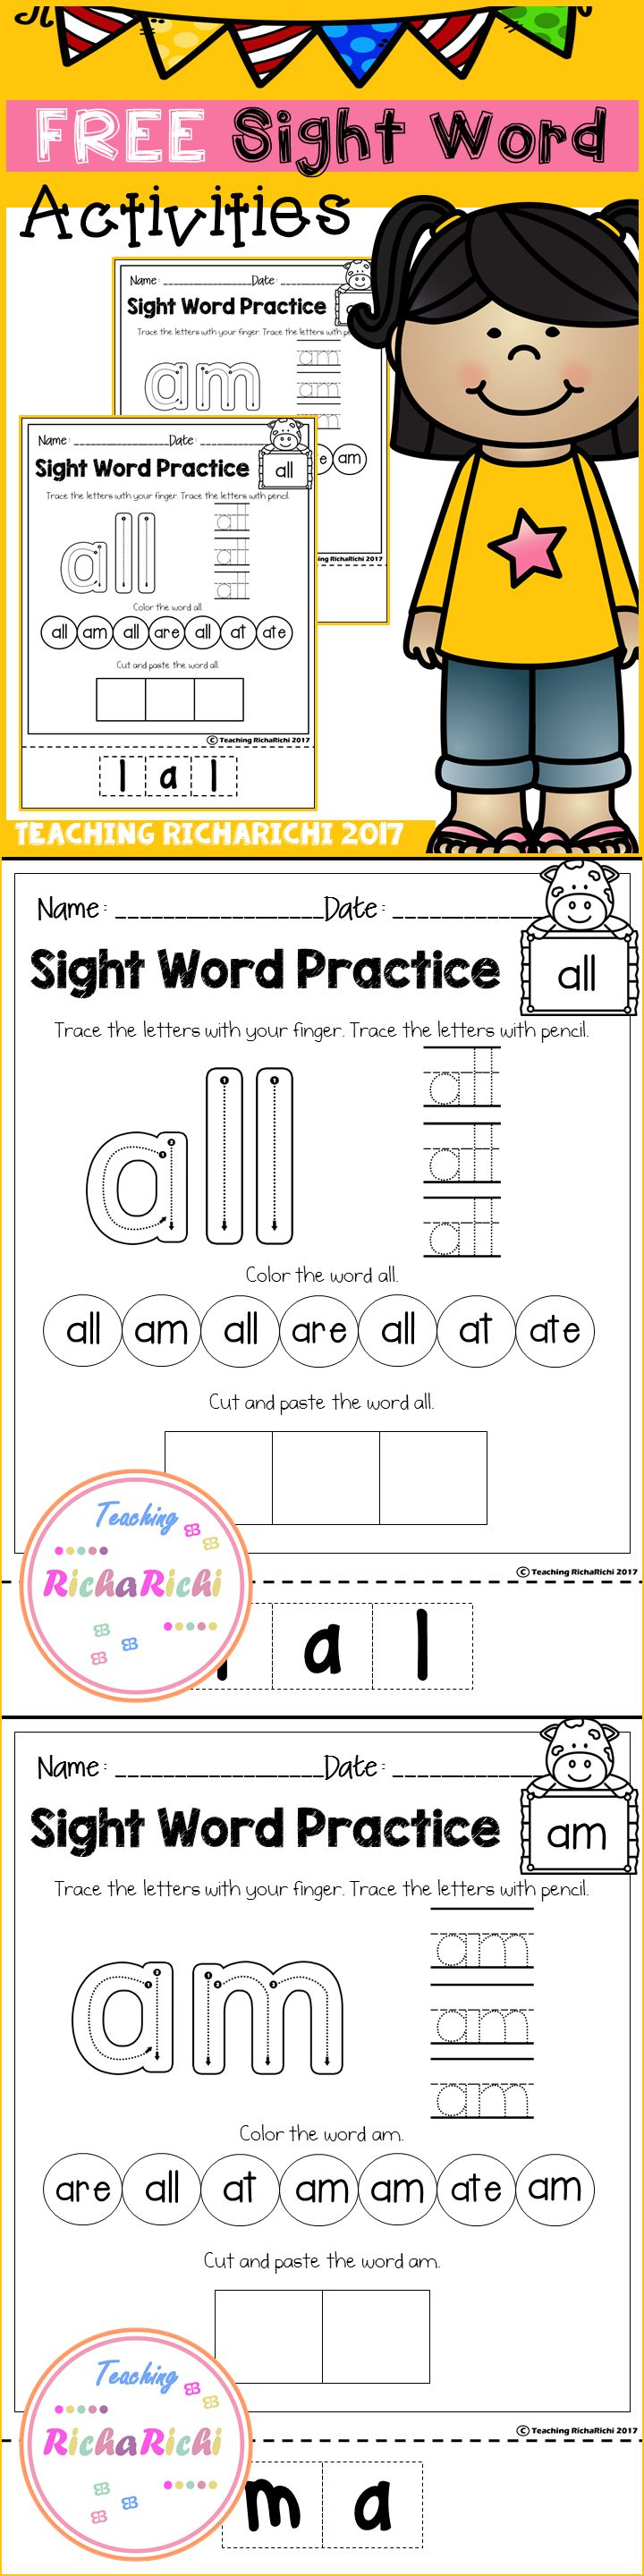 worksheet First Grade Sight Word Worksheets best 25 sight word worksheets ideas on pinterest words free sheets first grade